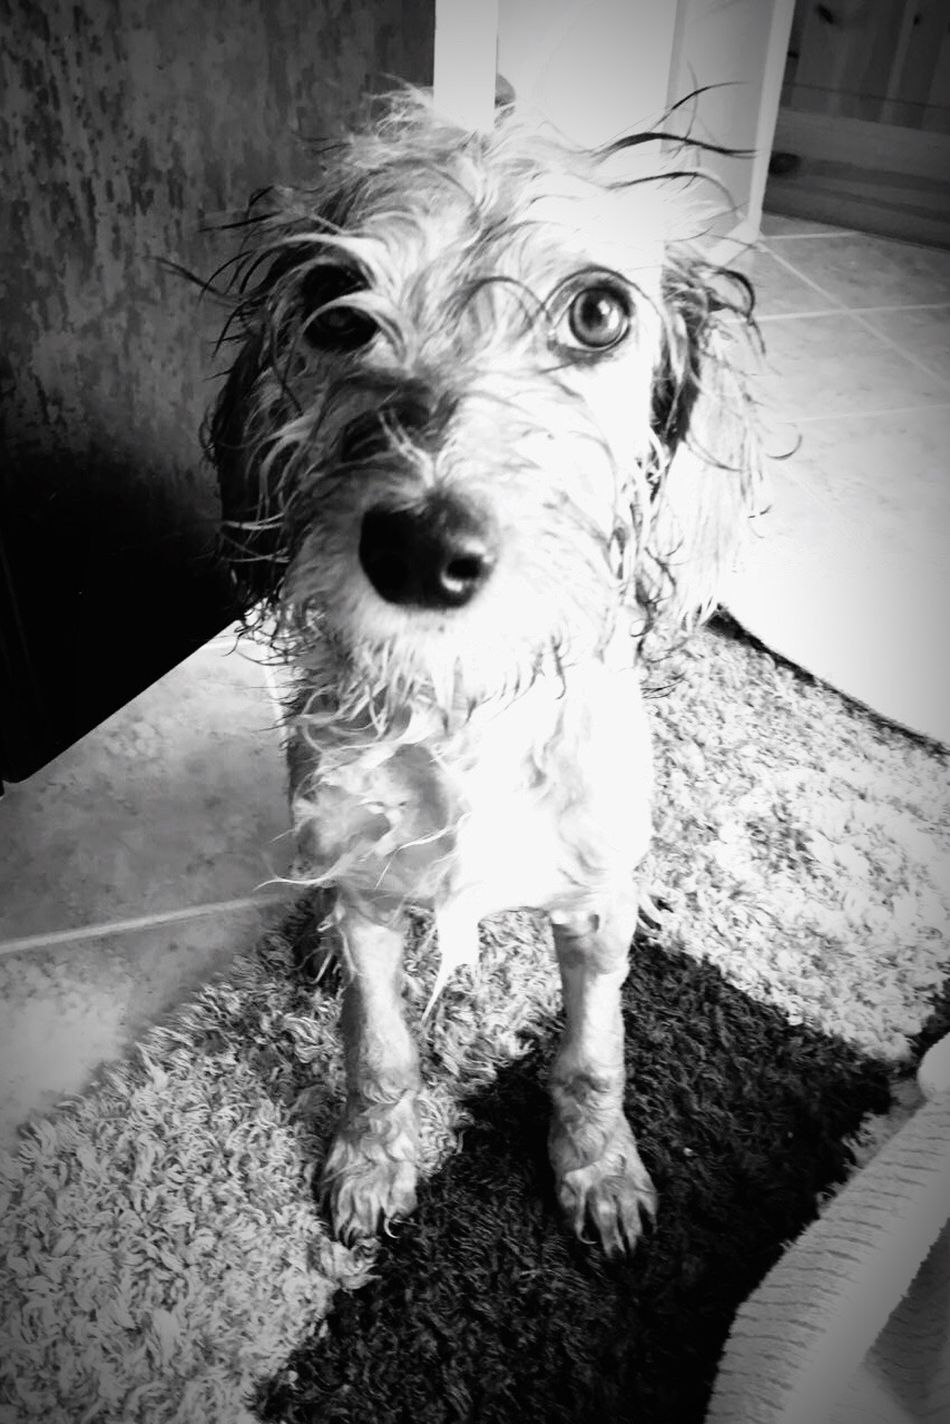 Wet Hair Wet Dog Wet Dog One Animal Pets Looking At Camera Animal Themes Portrait Domestic Animals No People Close-up Not Fair  Good Looking Hund Hundeblick Nasser Hund Take A Shower Shower Shower Time Bath Time Bath Bathroom Indoors